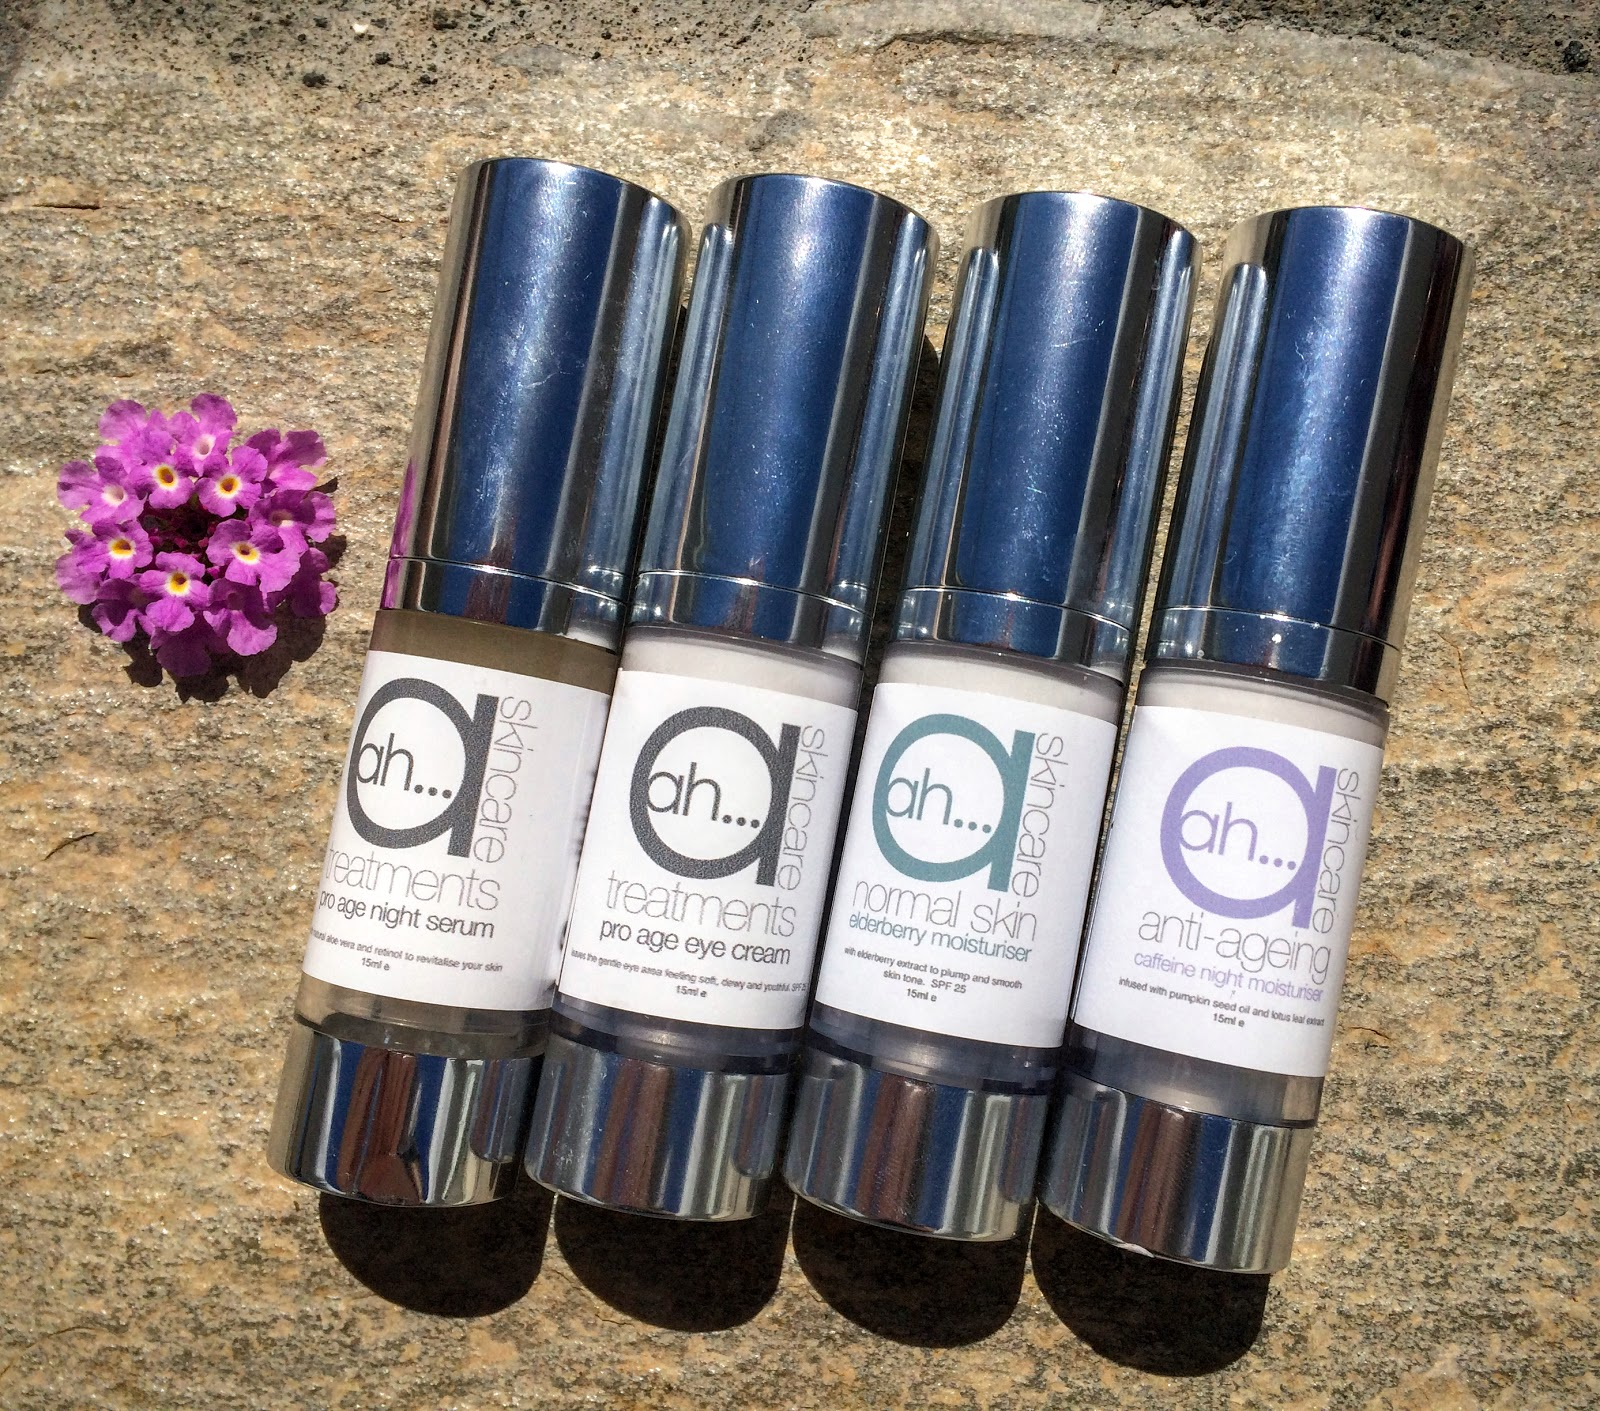 4 Ah Skincare products